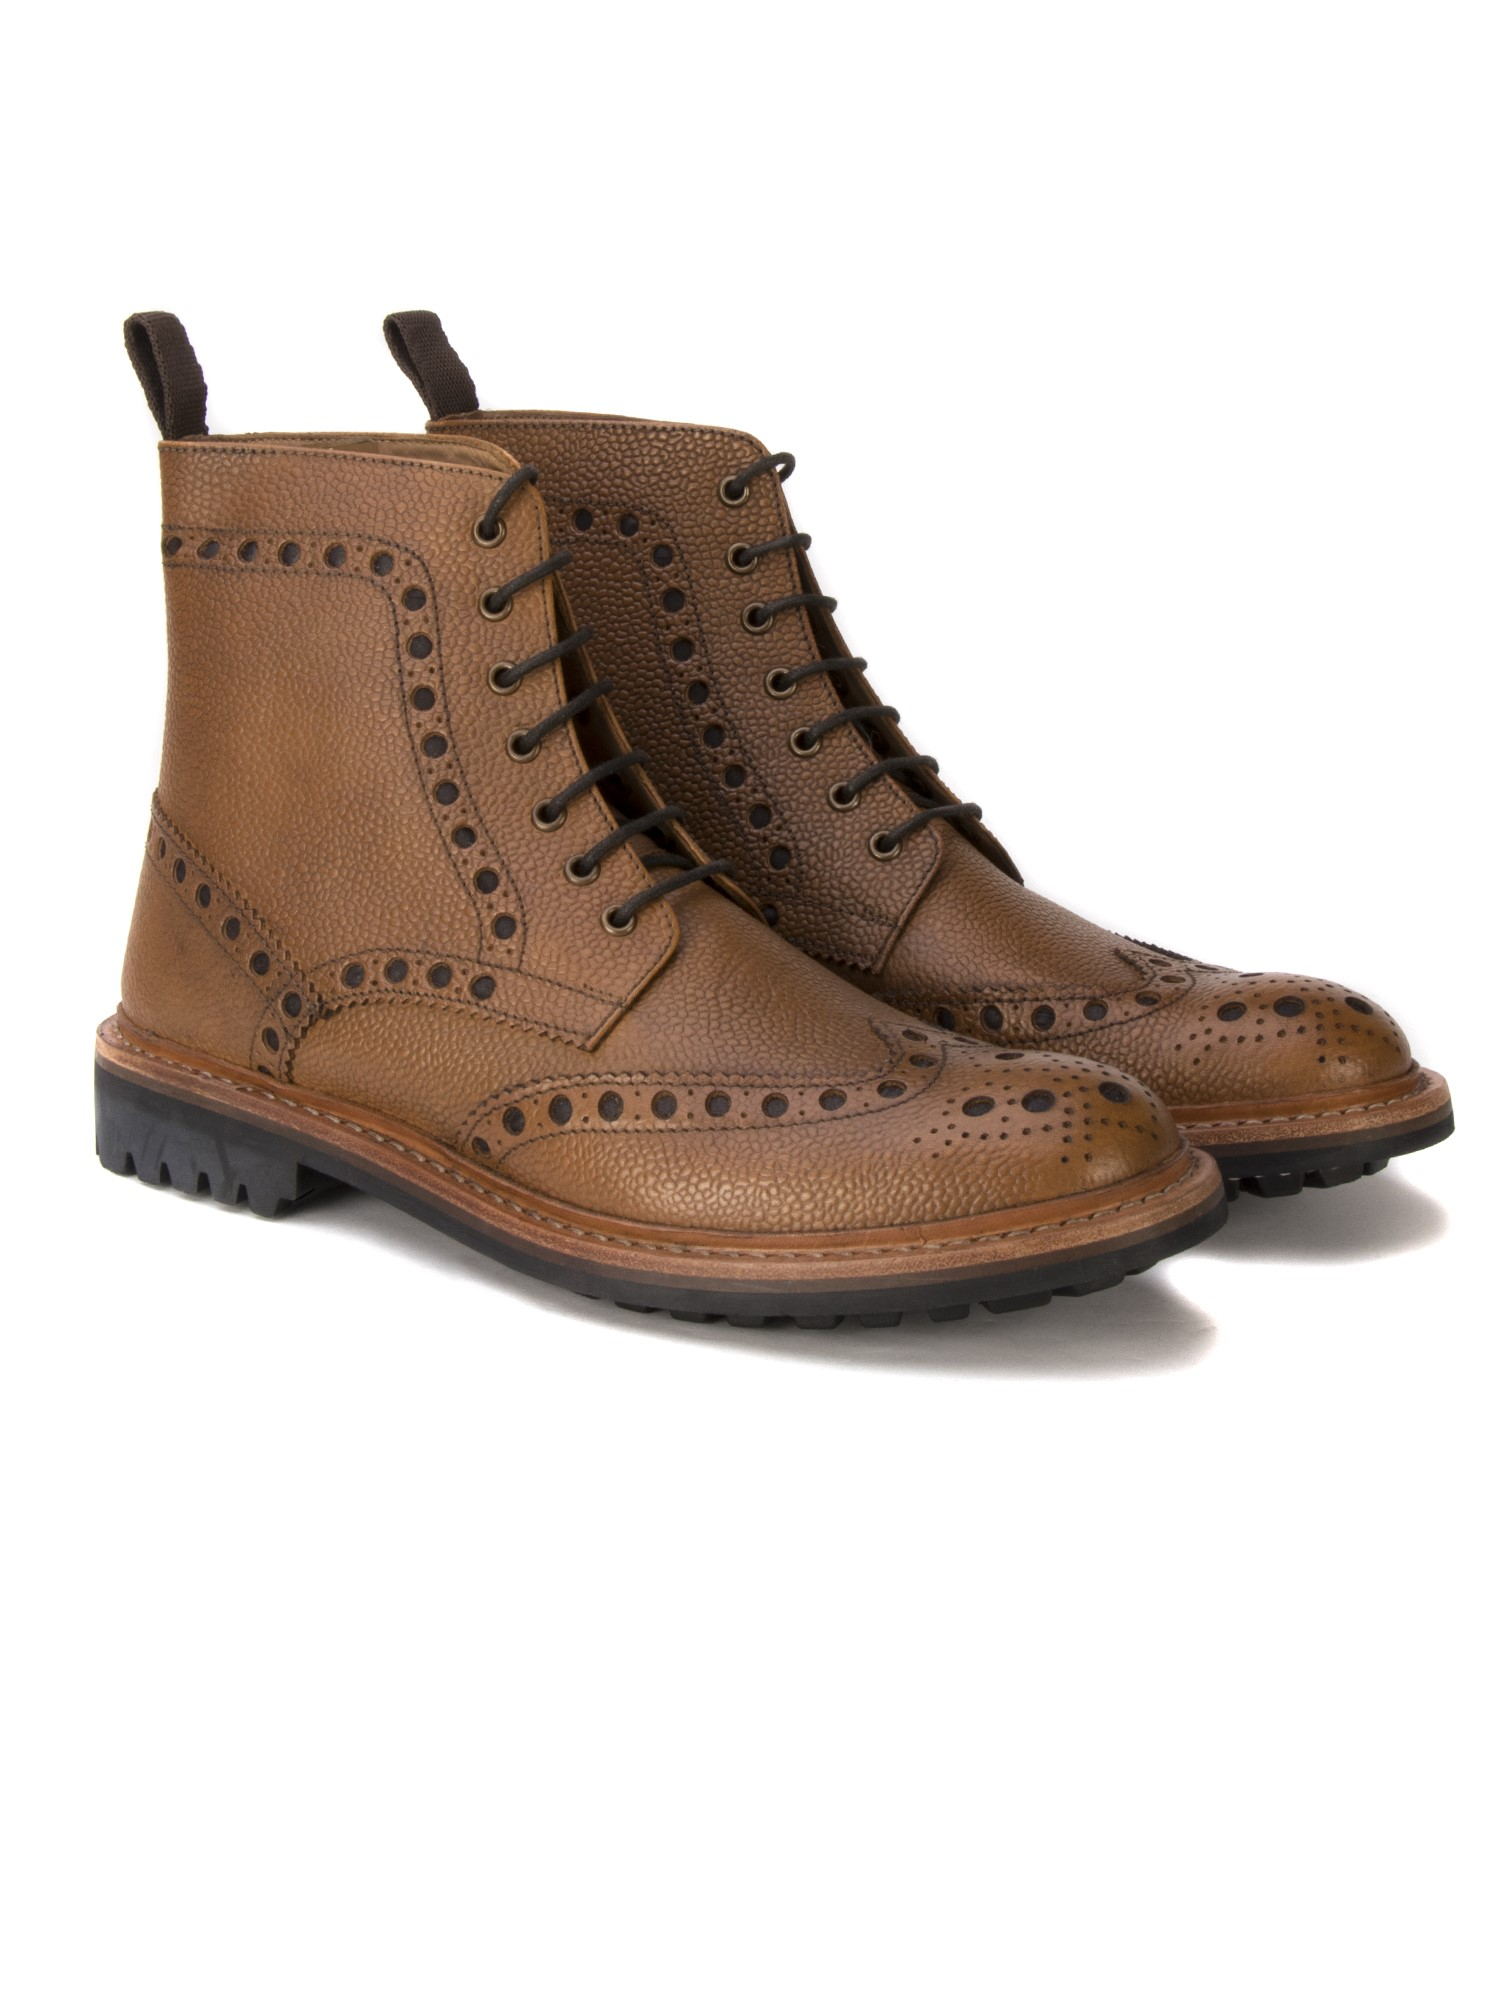 Ben Sherman Tan Goodyear Country Brogue Boot